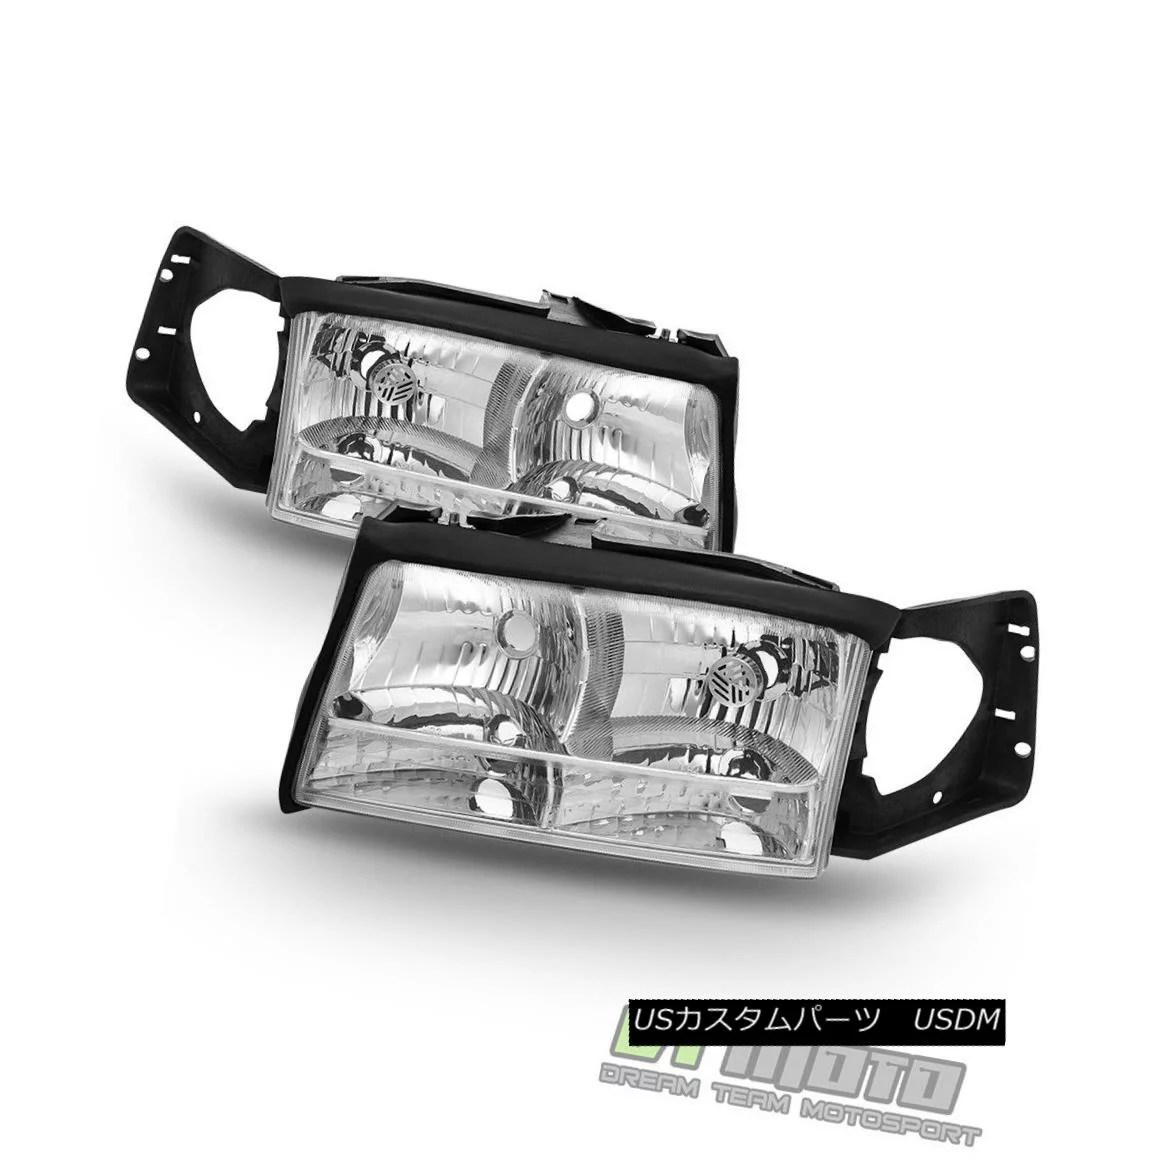 hight resolution of  1997 1999 cadillac deville headlights headlamps replacement set 97 99 left right 1997 1999 cadillac deville